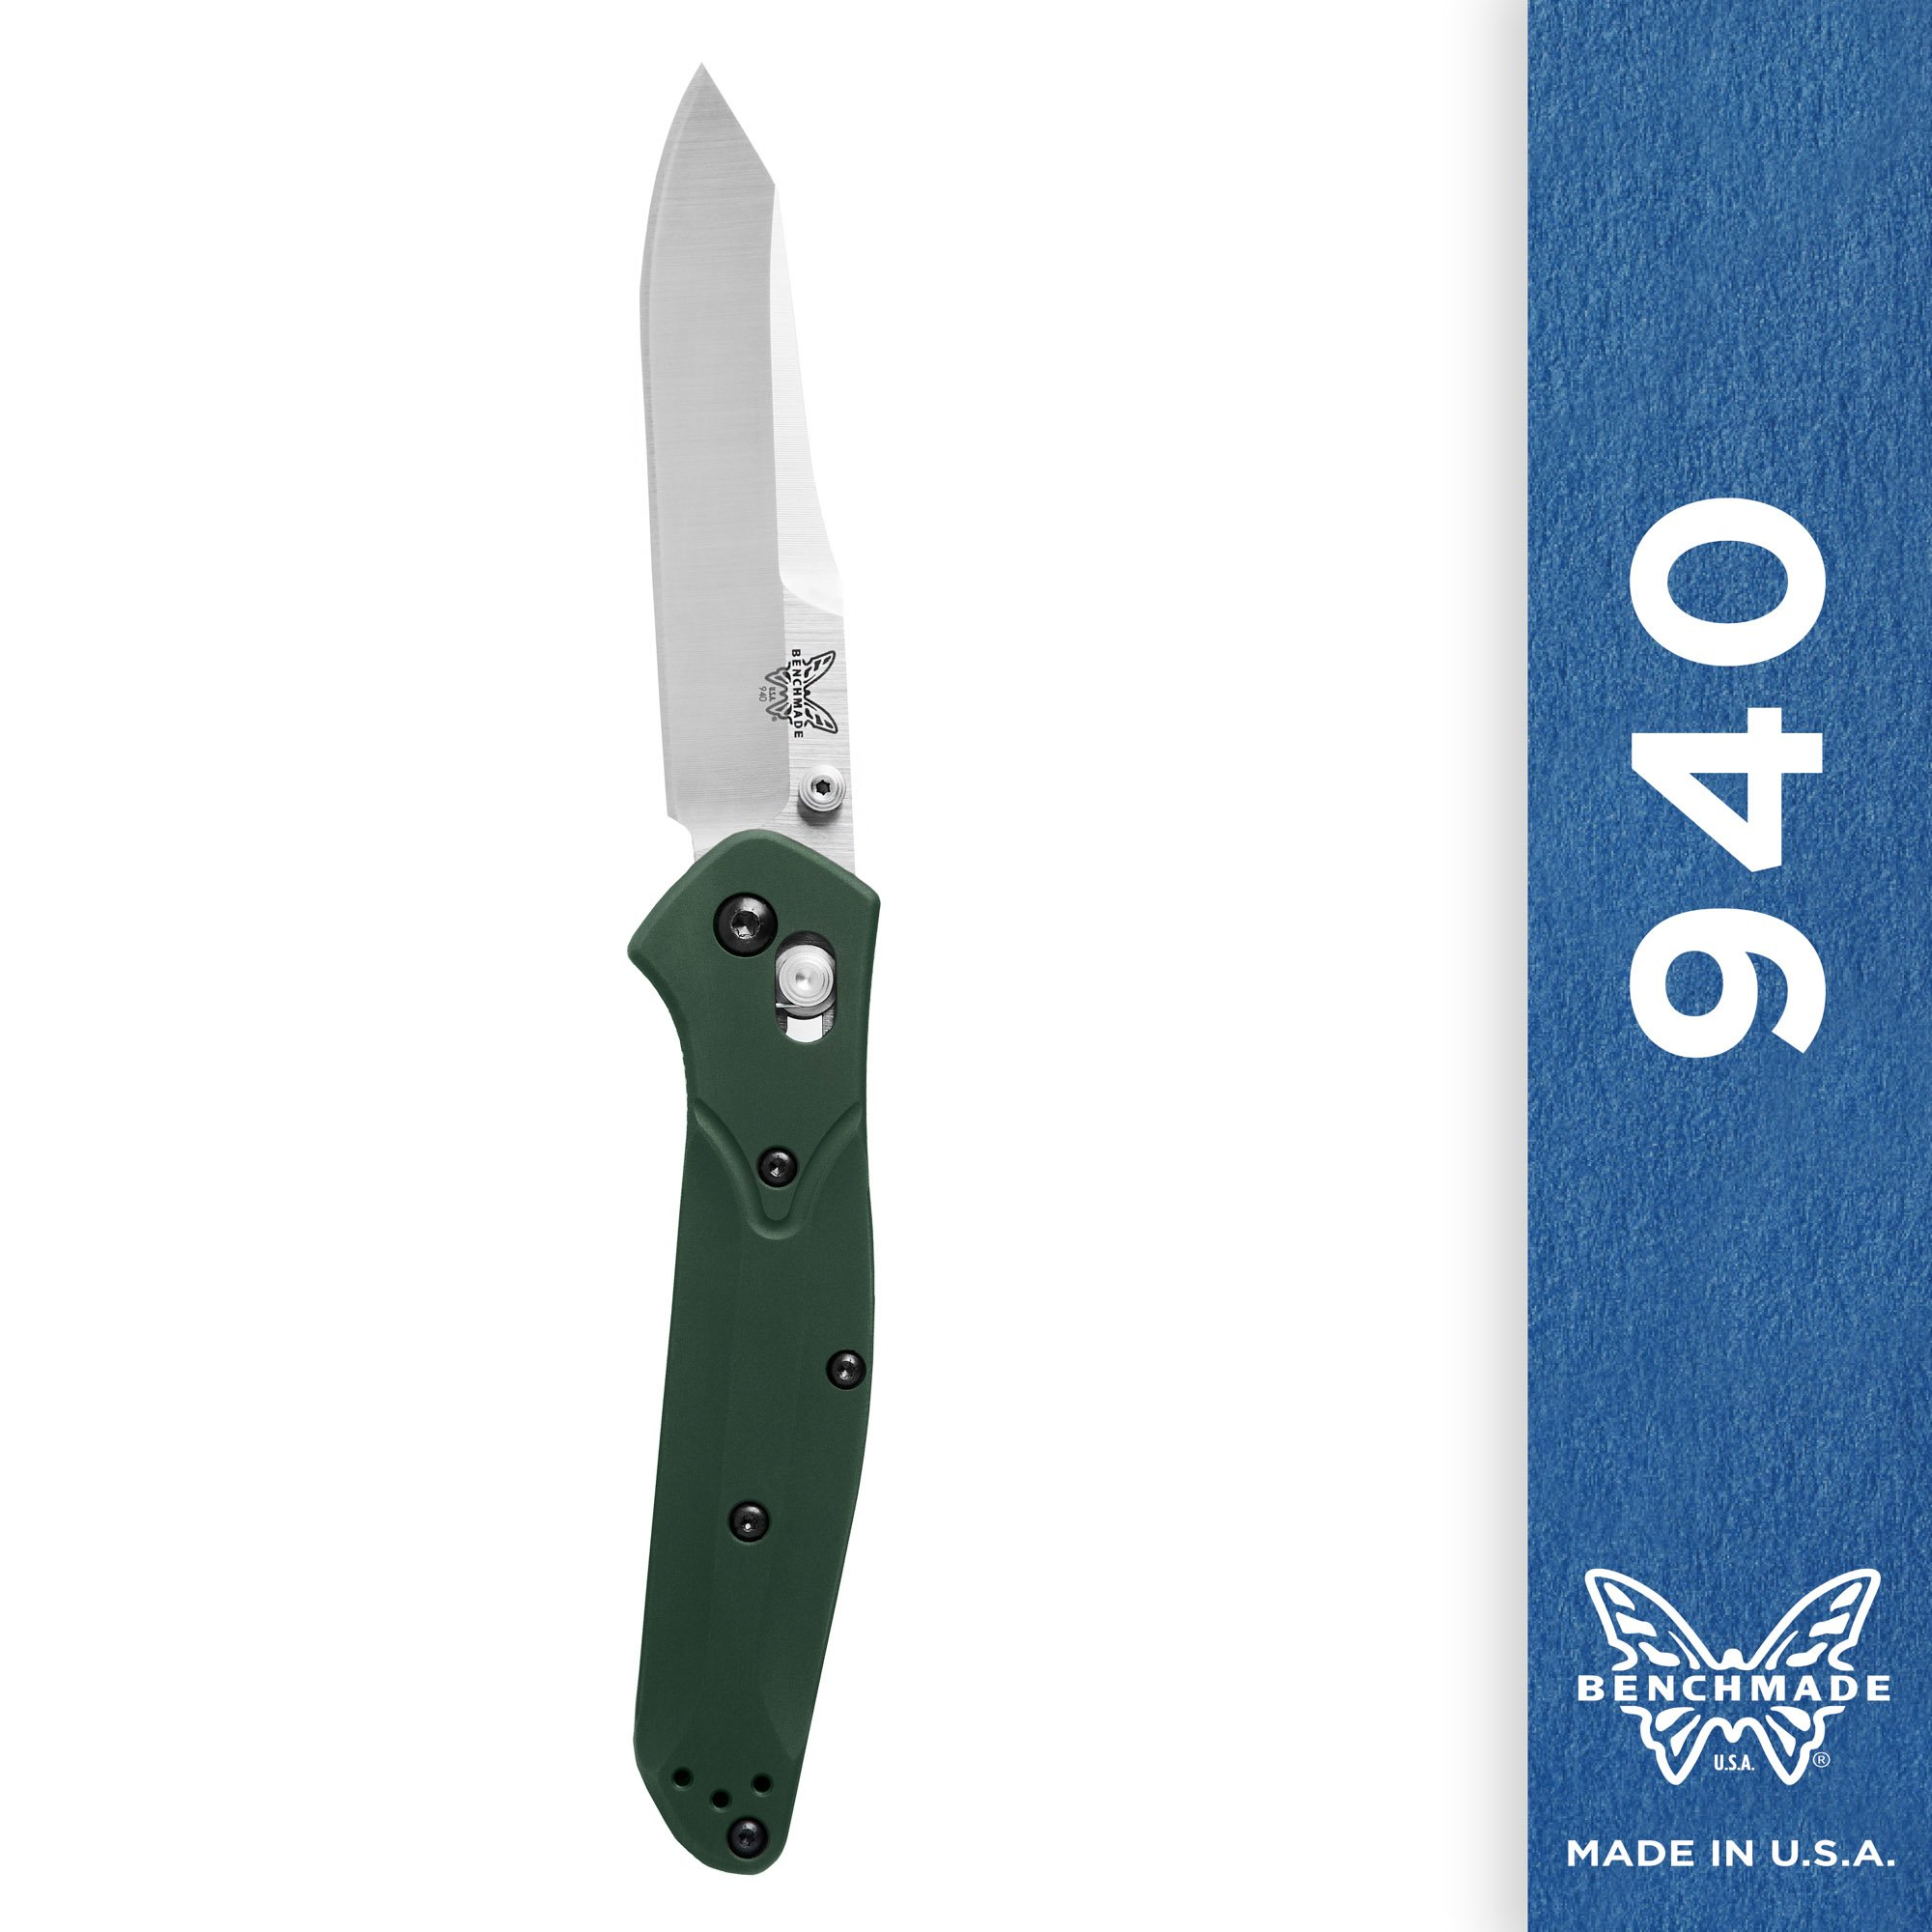 Benchmade Knife 940 Plain Satin Blade Green Handle by Benchmade